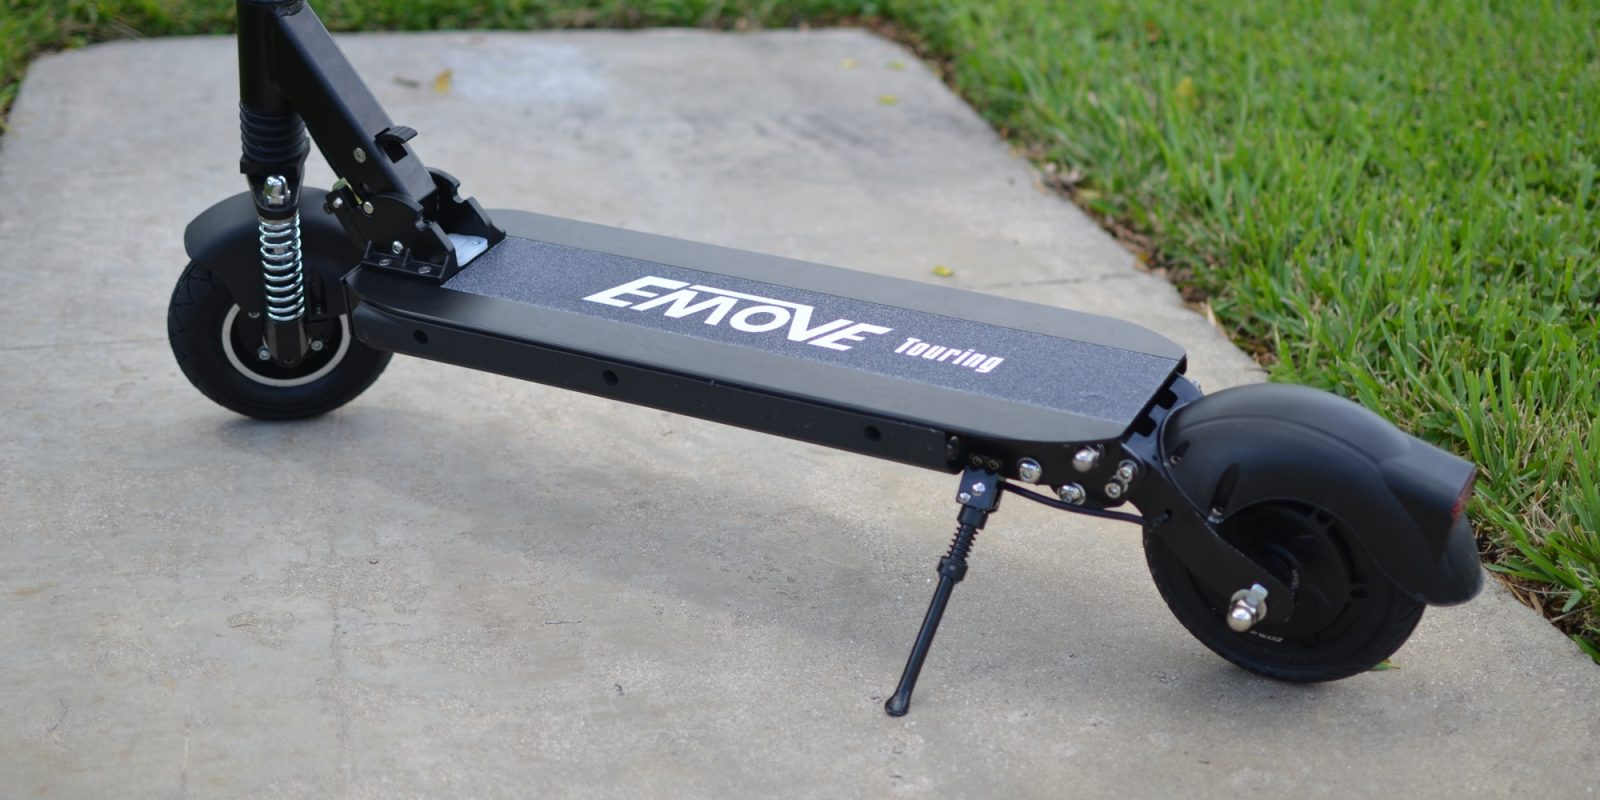 Review: 25 MPH full-suspension Emove Touring electric scooter (Discount code!)